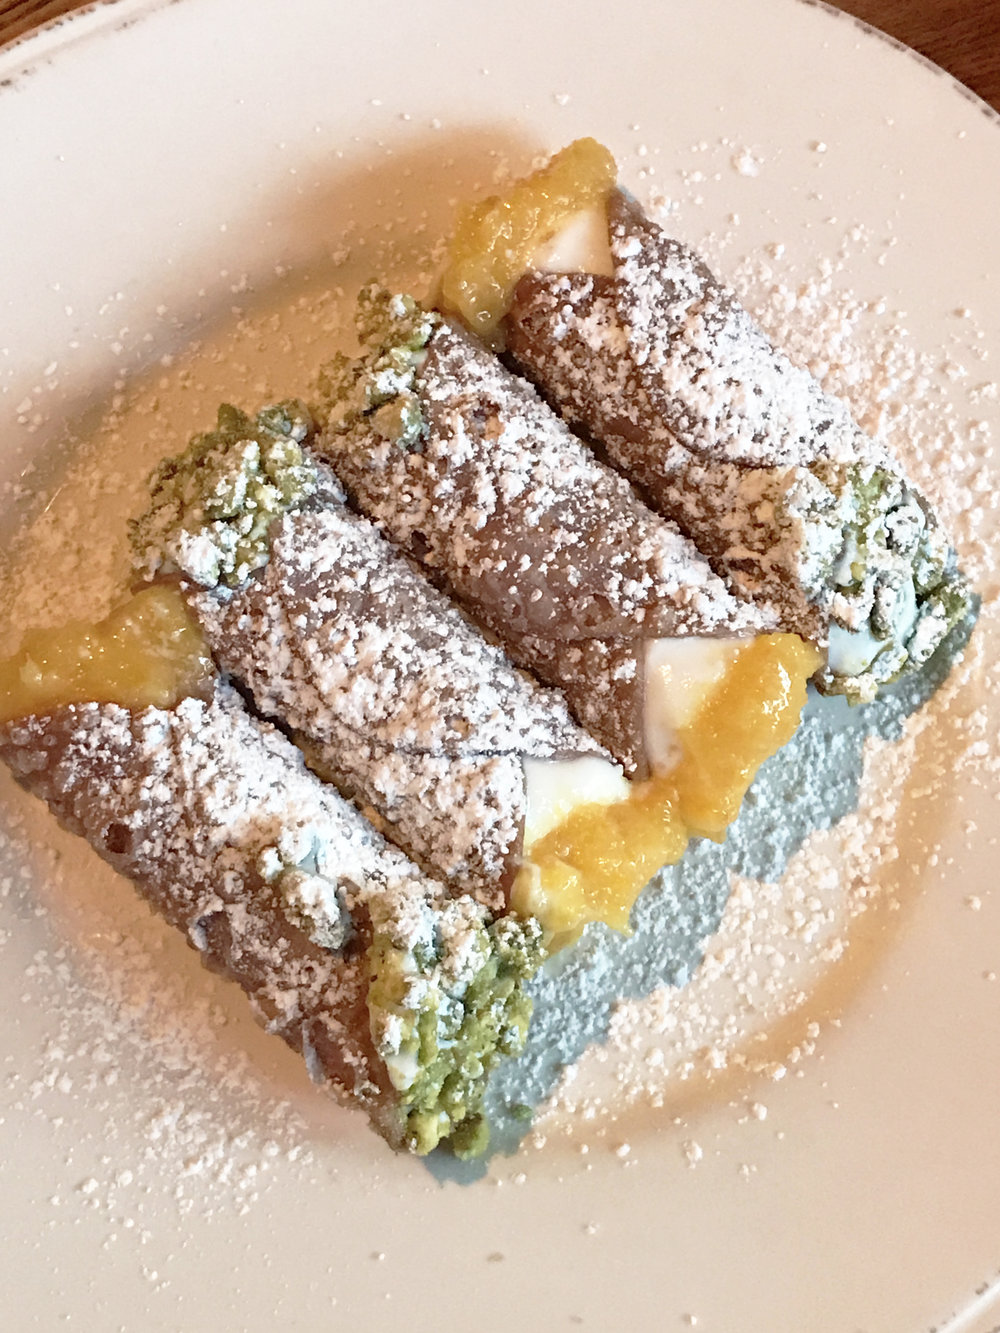 Cannoli - homemade cannoli shells, ricotta filling, orange marmalade, pistachios